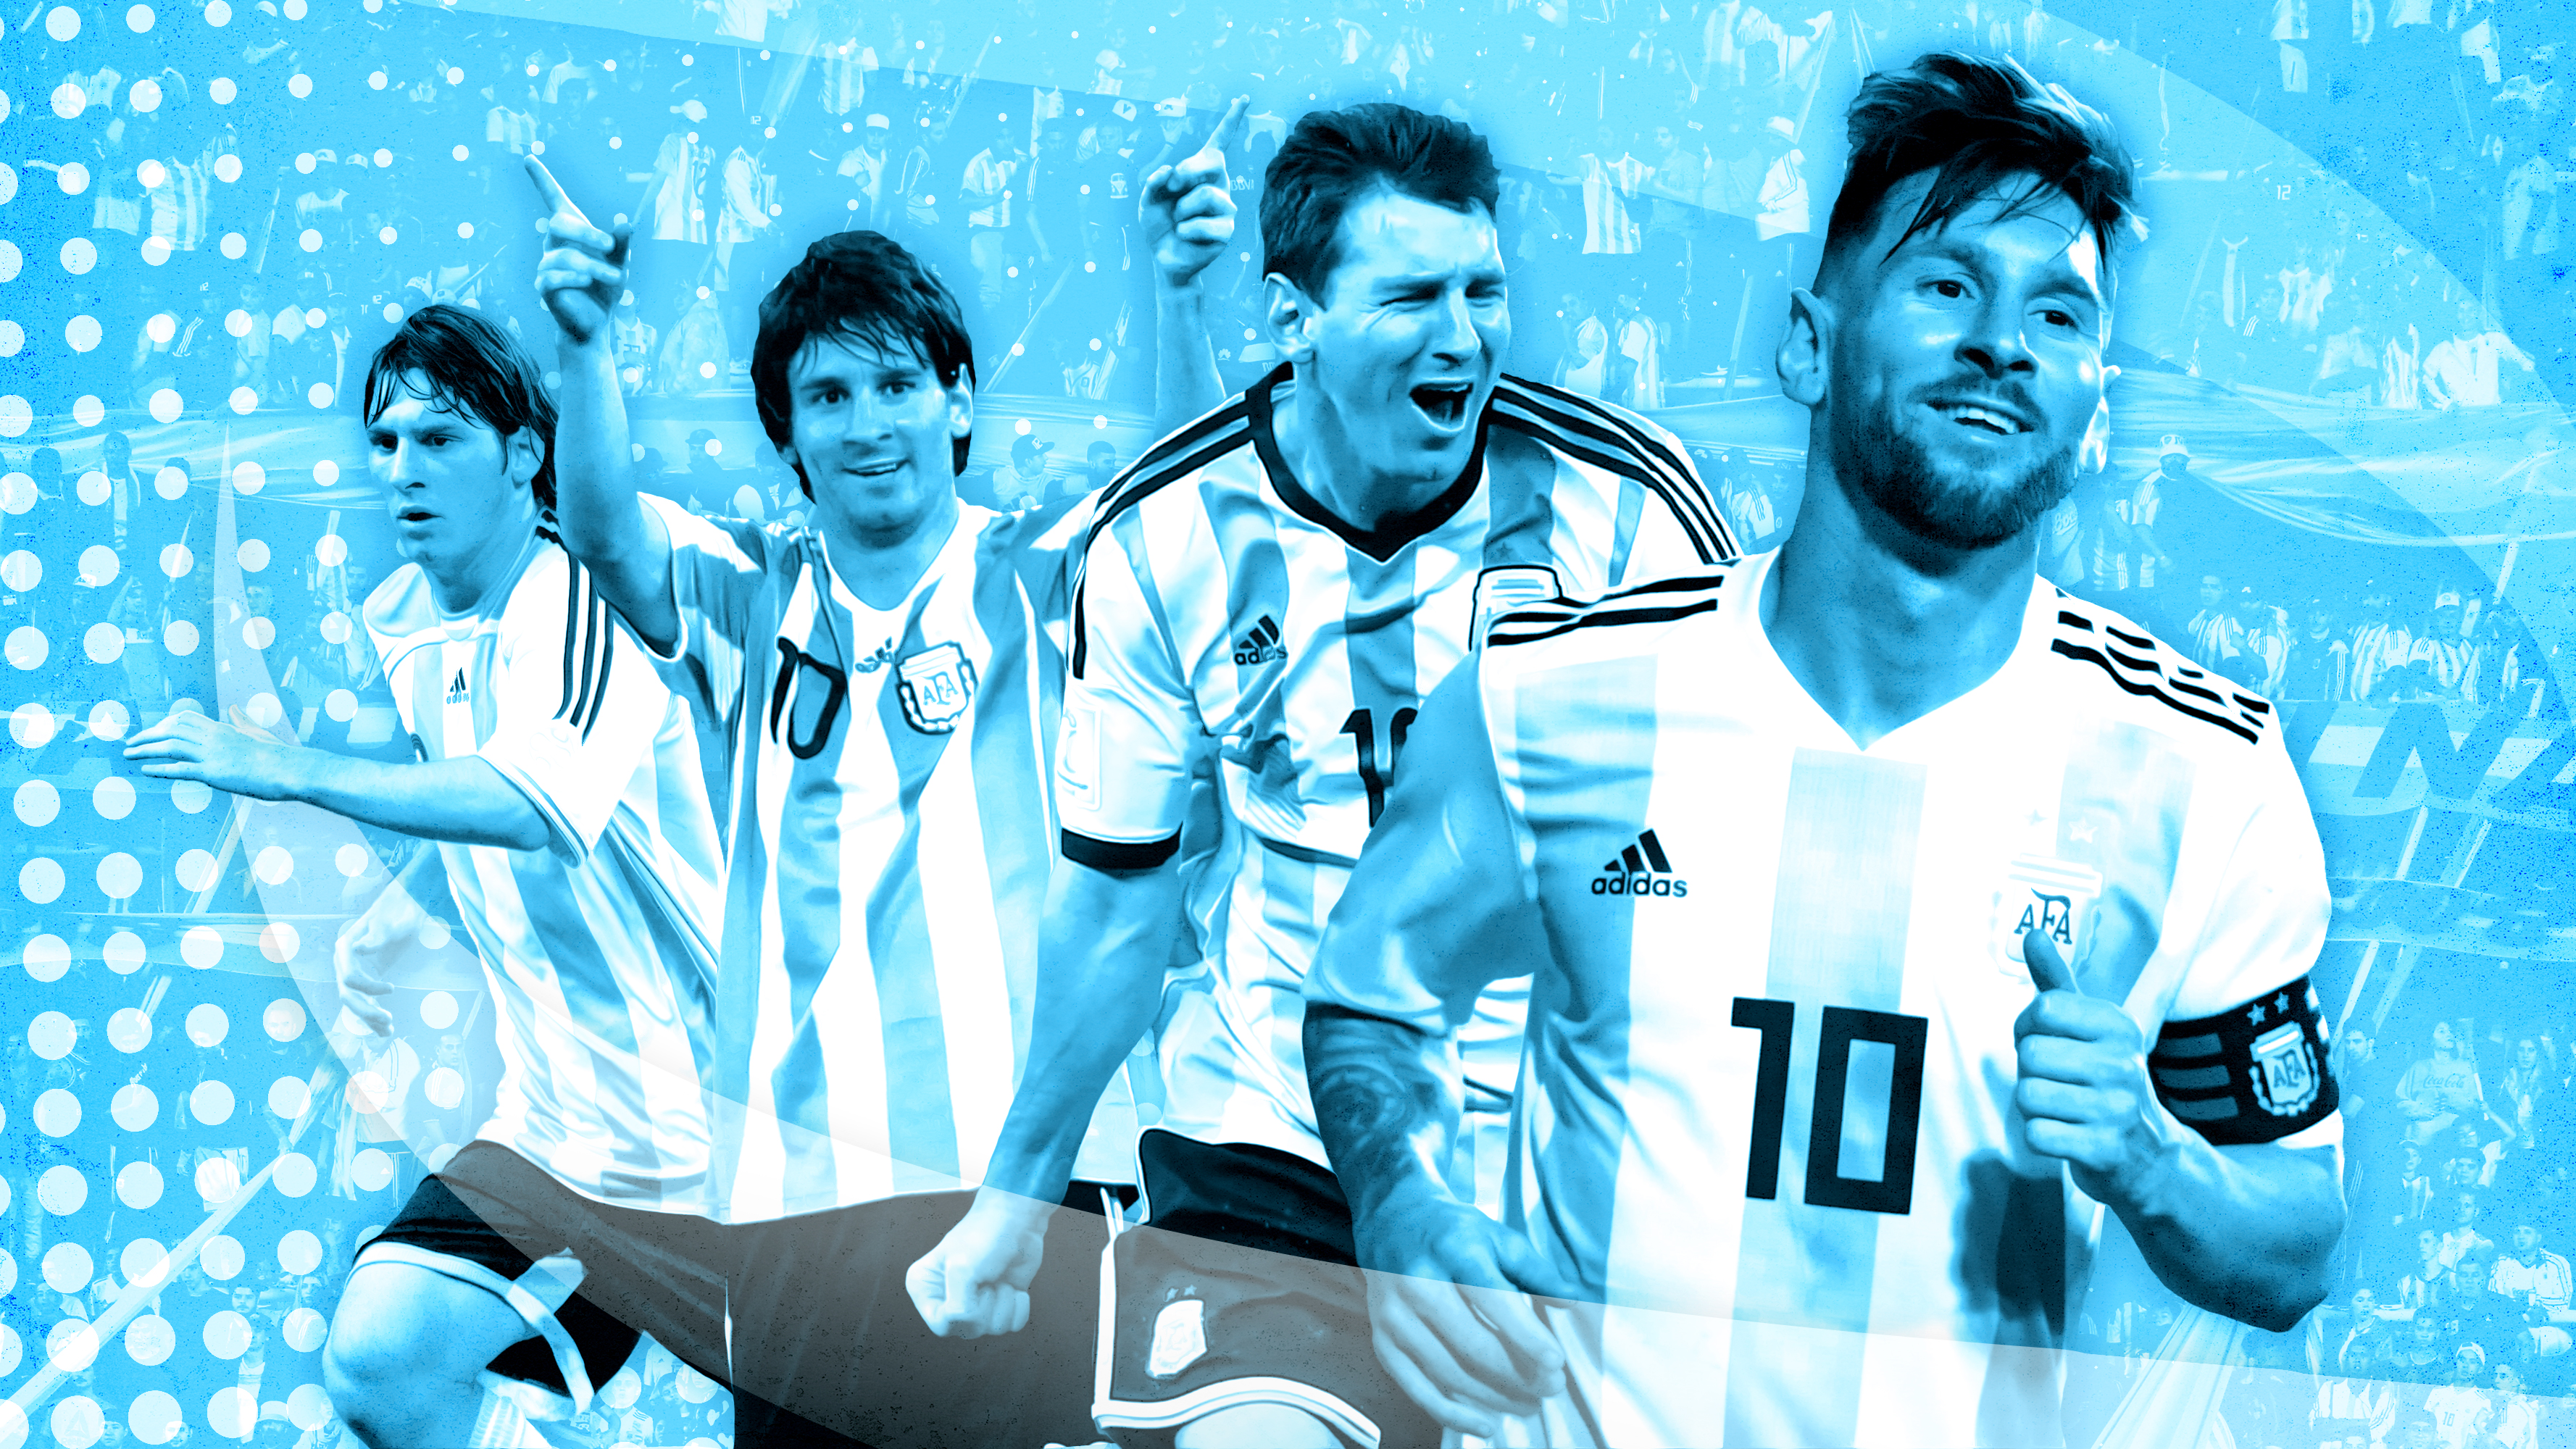 ae5b4dbd2 2018 World Cup  The History of Messi and Argentina vs. Everything ...